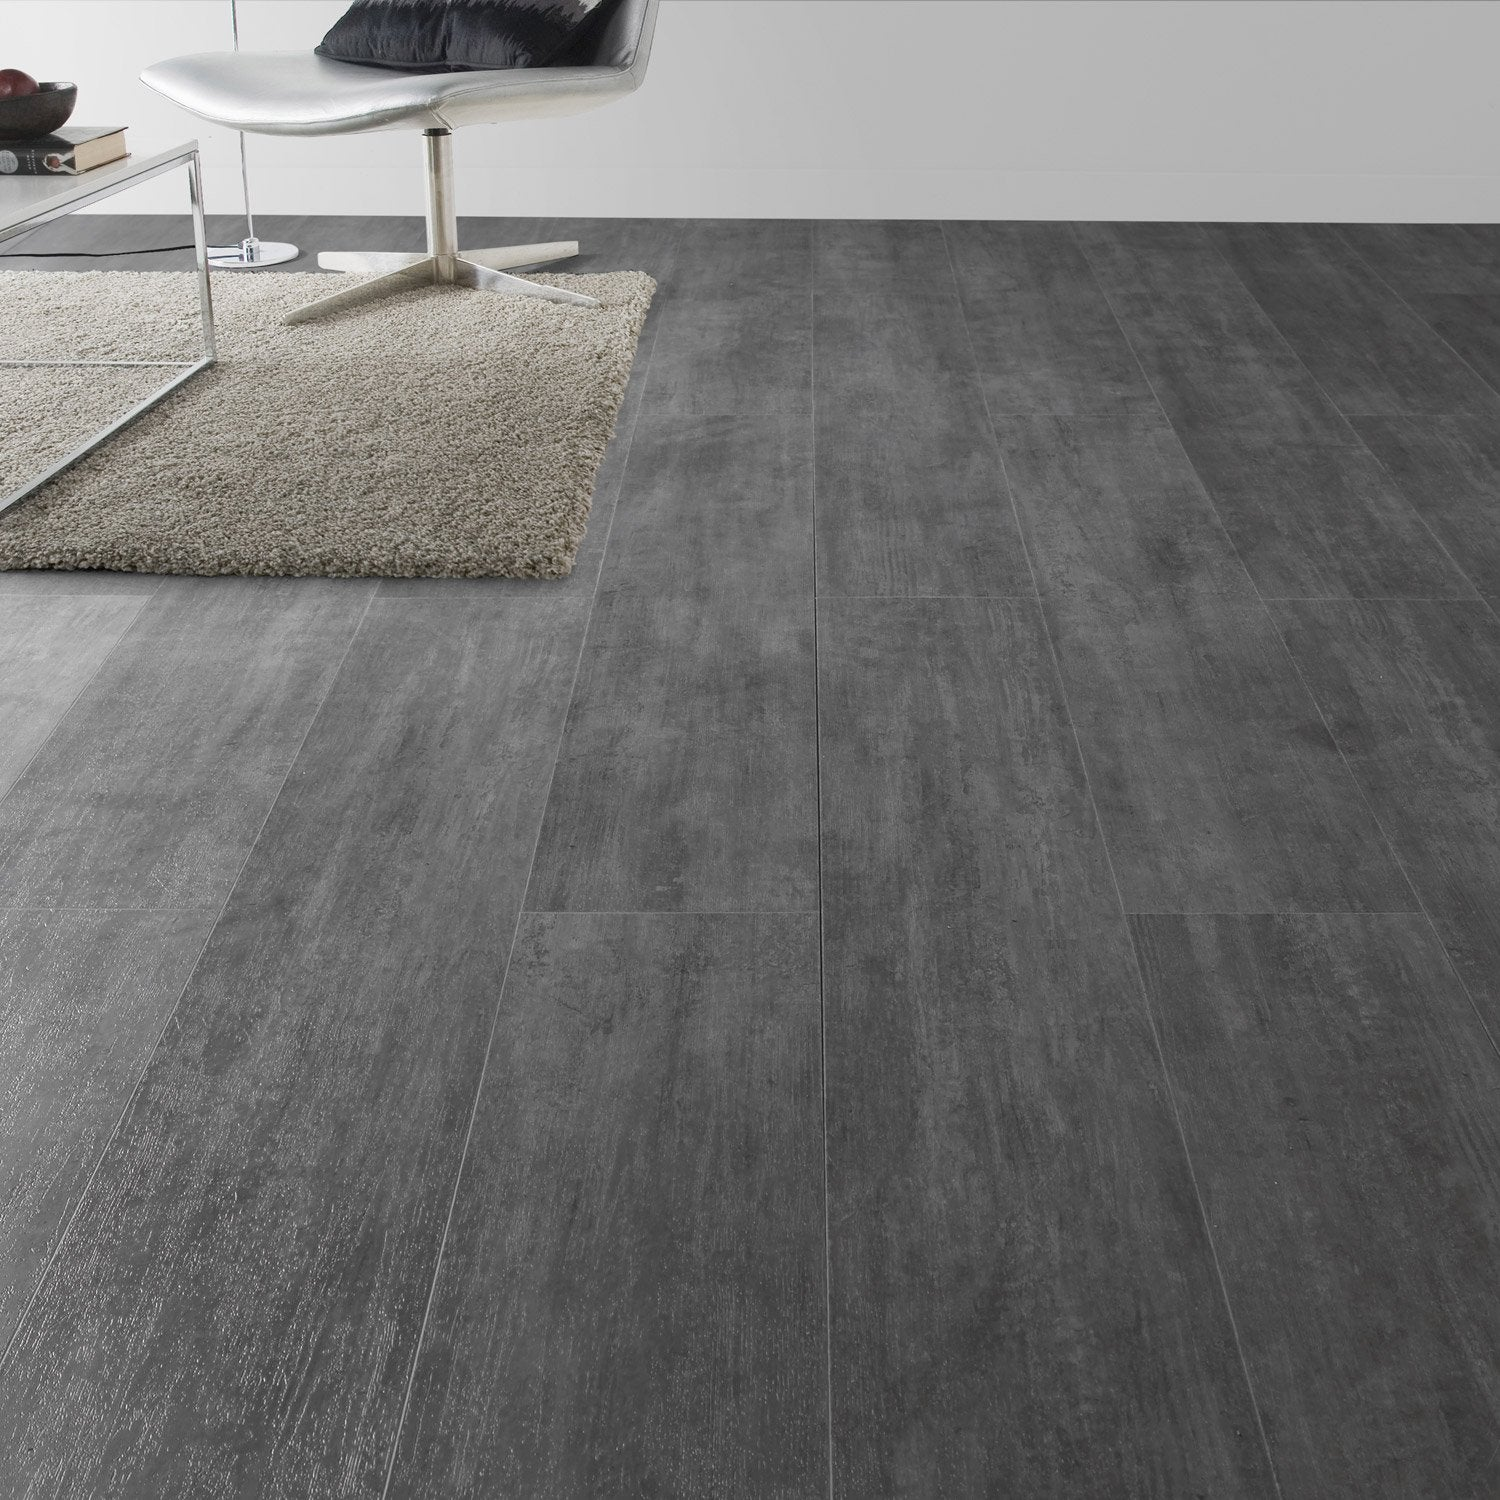 Lame pvc clipsable nolita grey gerflor senso lock plus - Dalle vinyle carreau de ciment ...